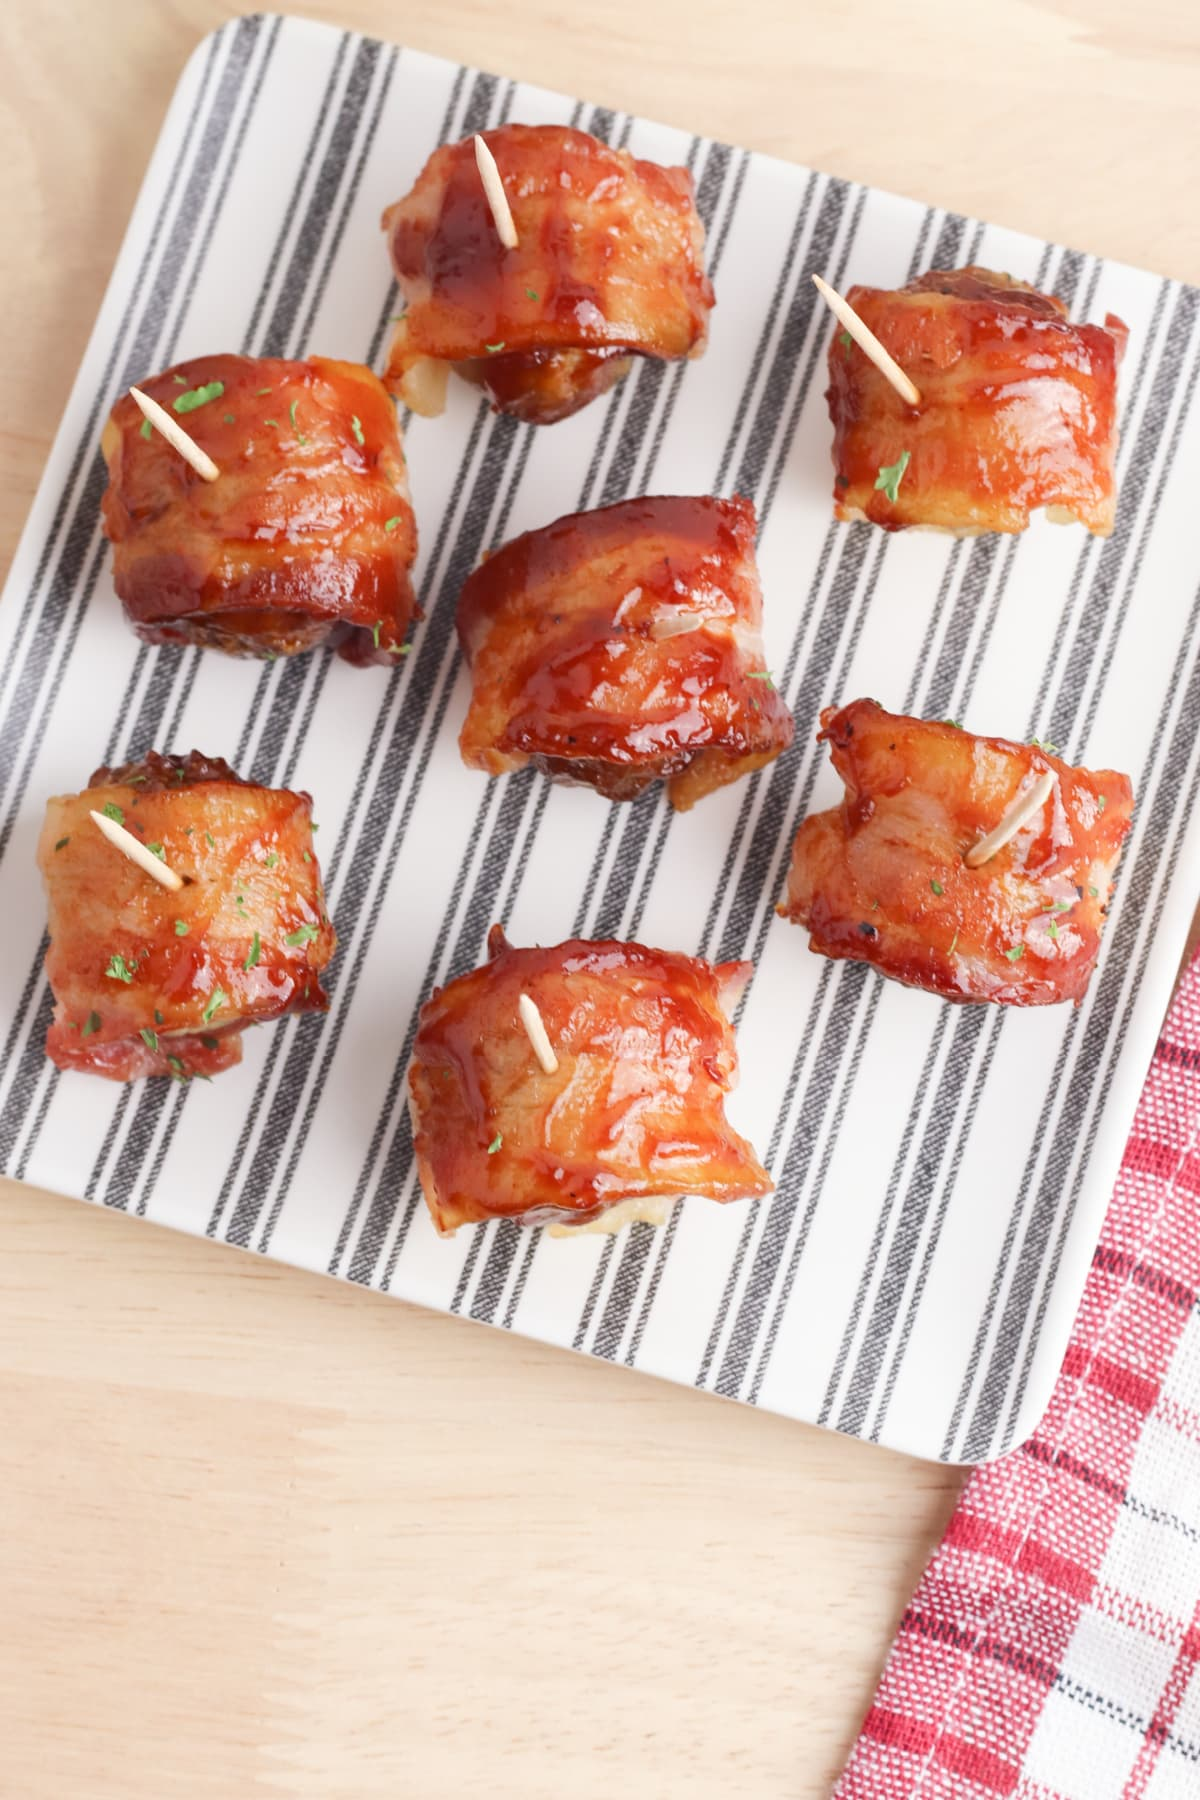 Bacon wrapped bbq meatballs from above